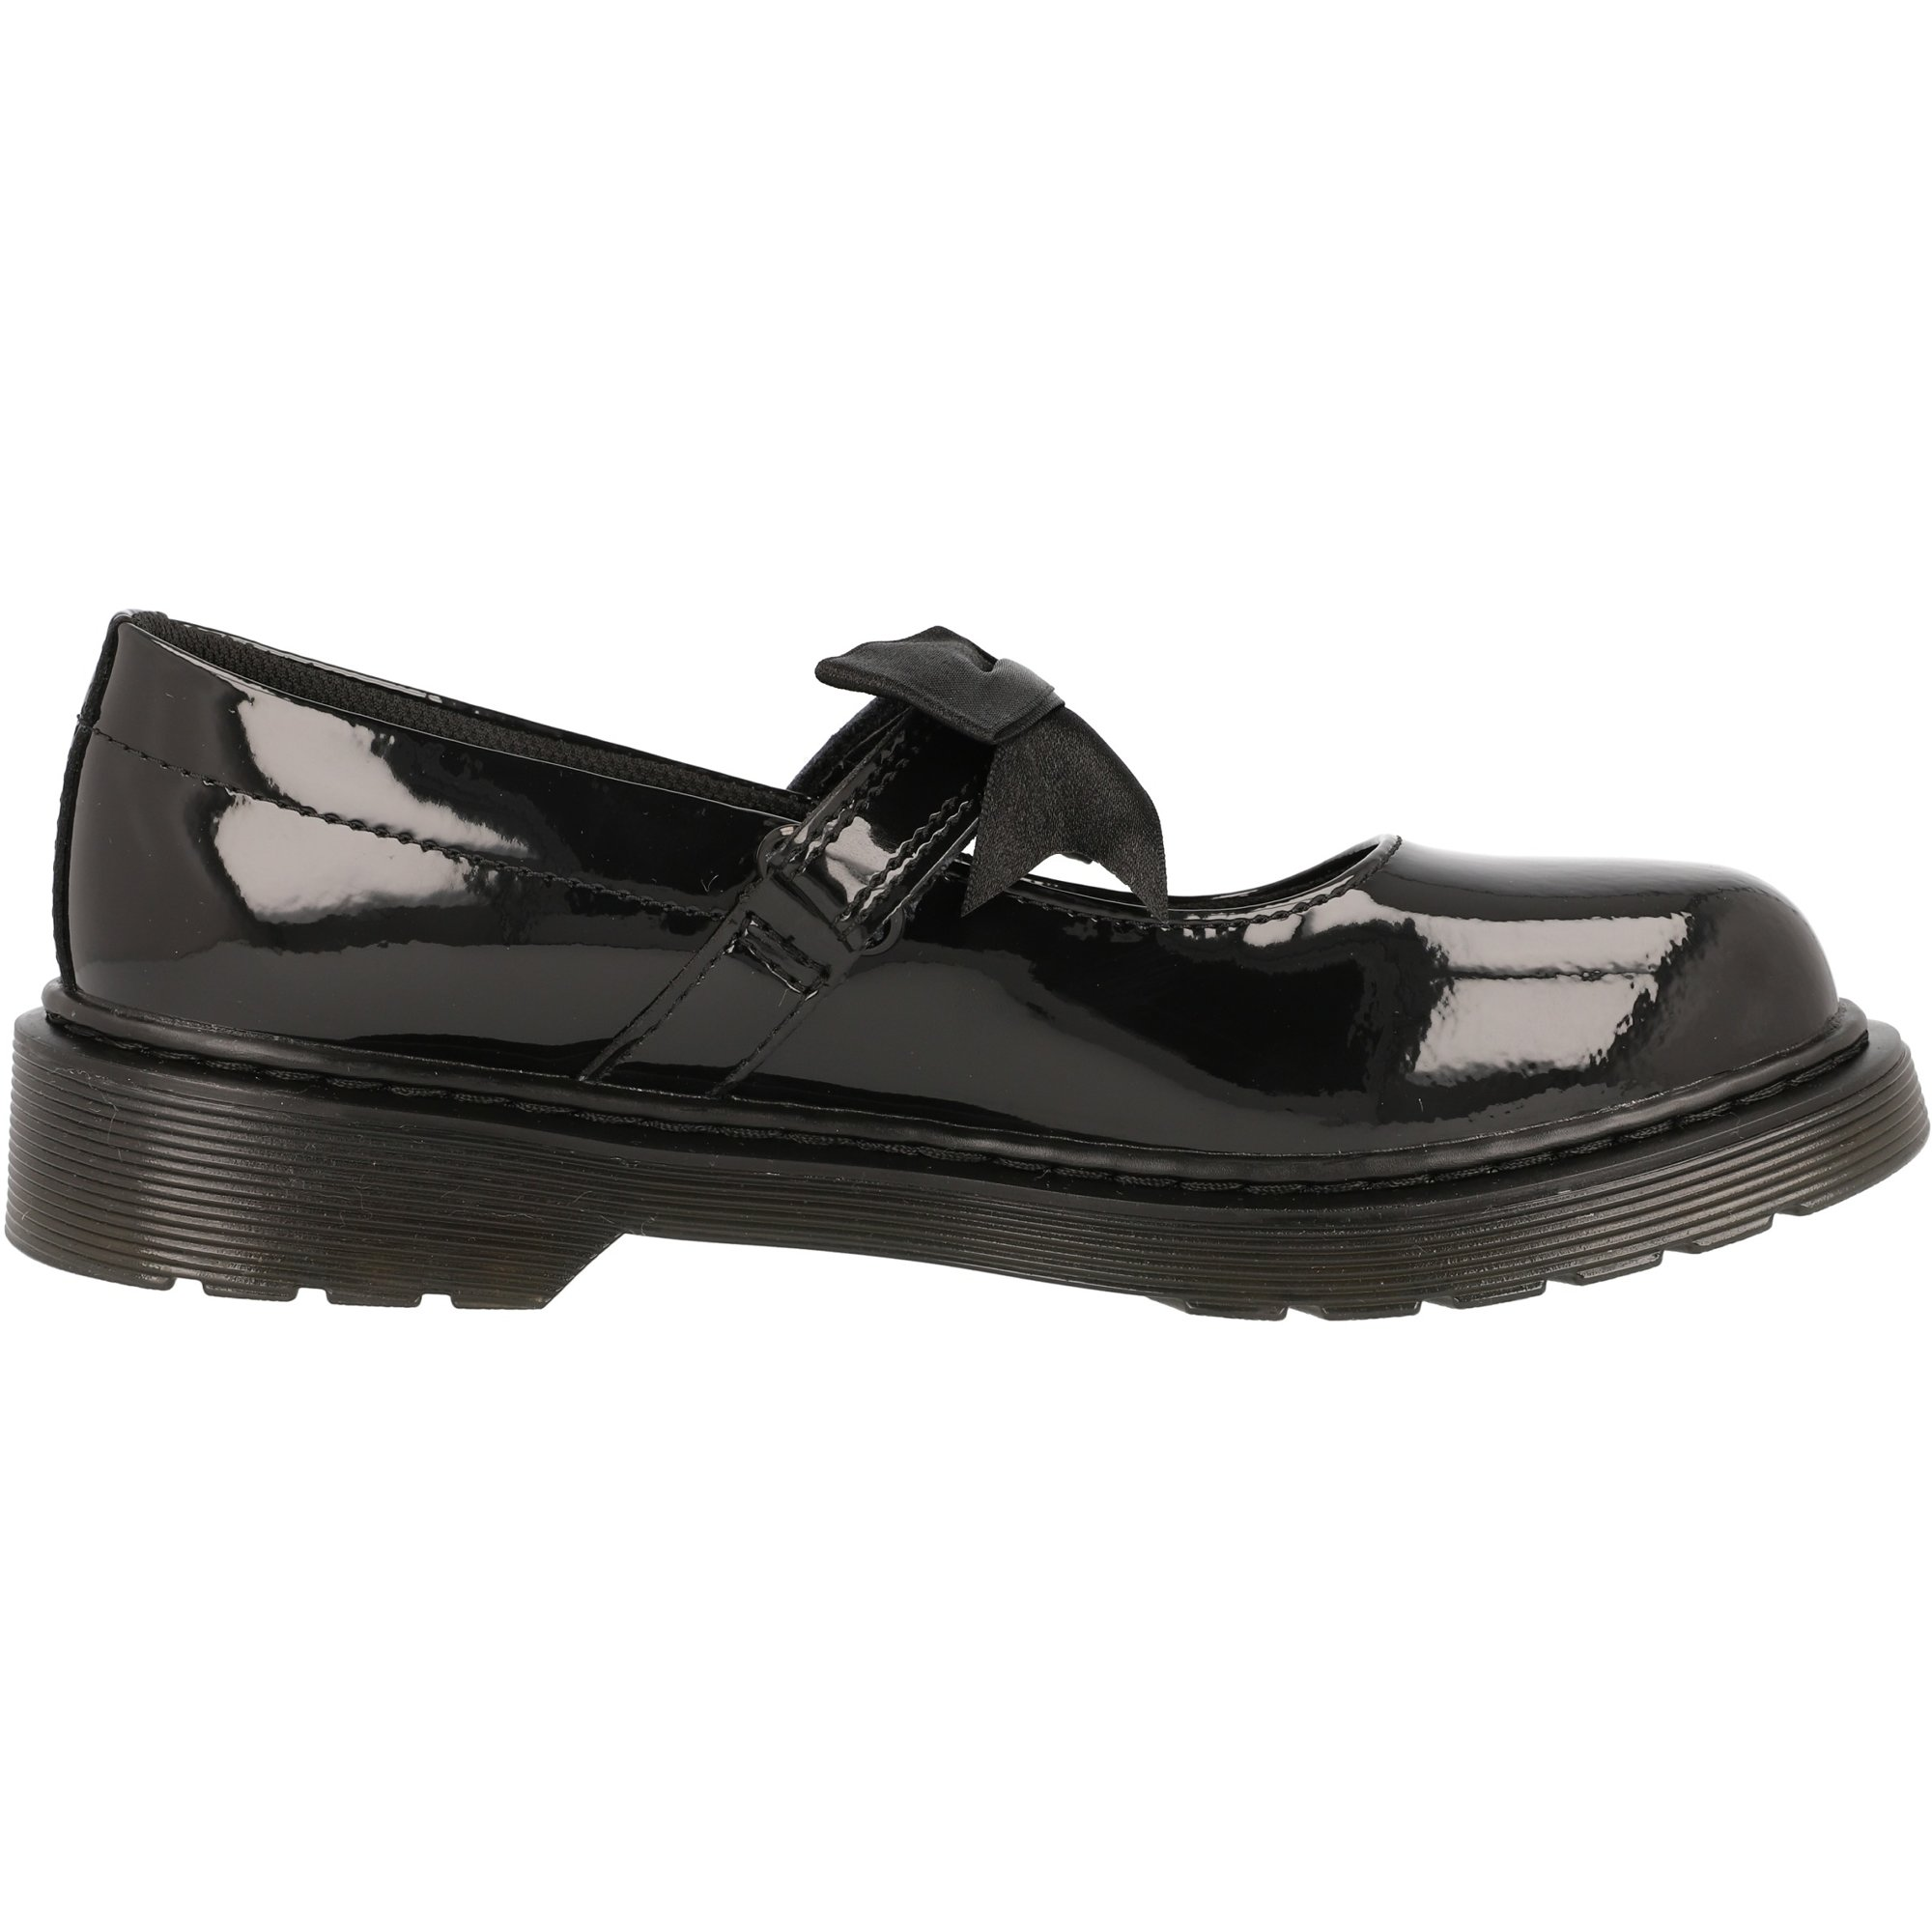 Dr. Martens Maccy II J Black Patent Junior Mary Jane Shoes